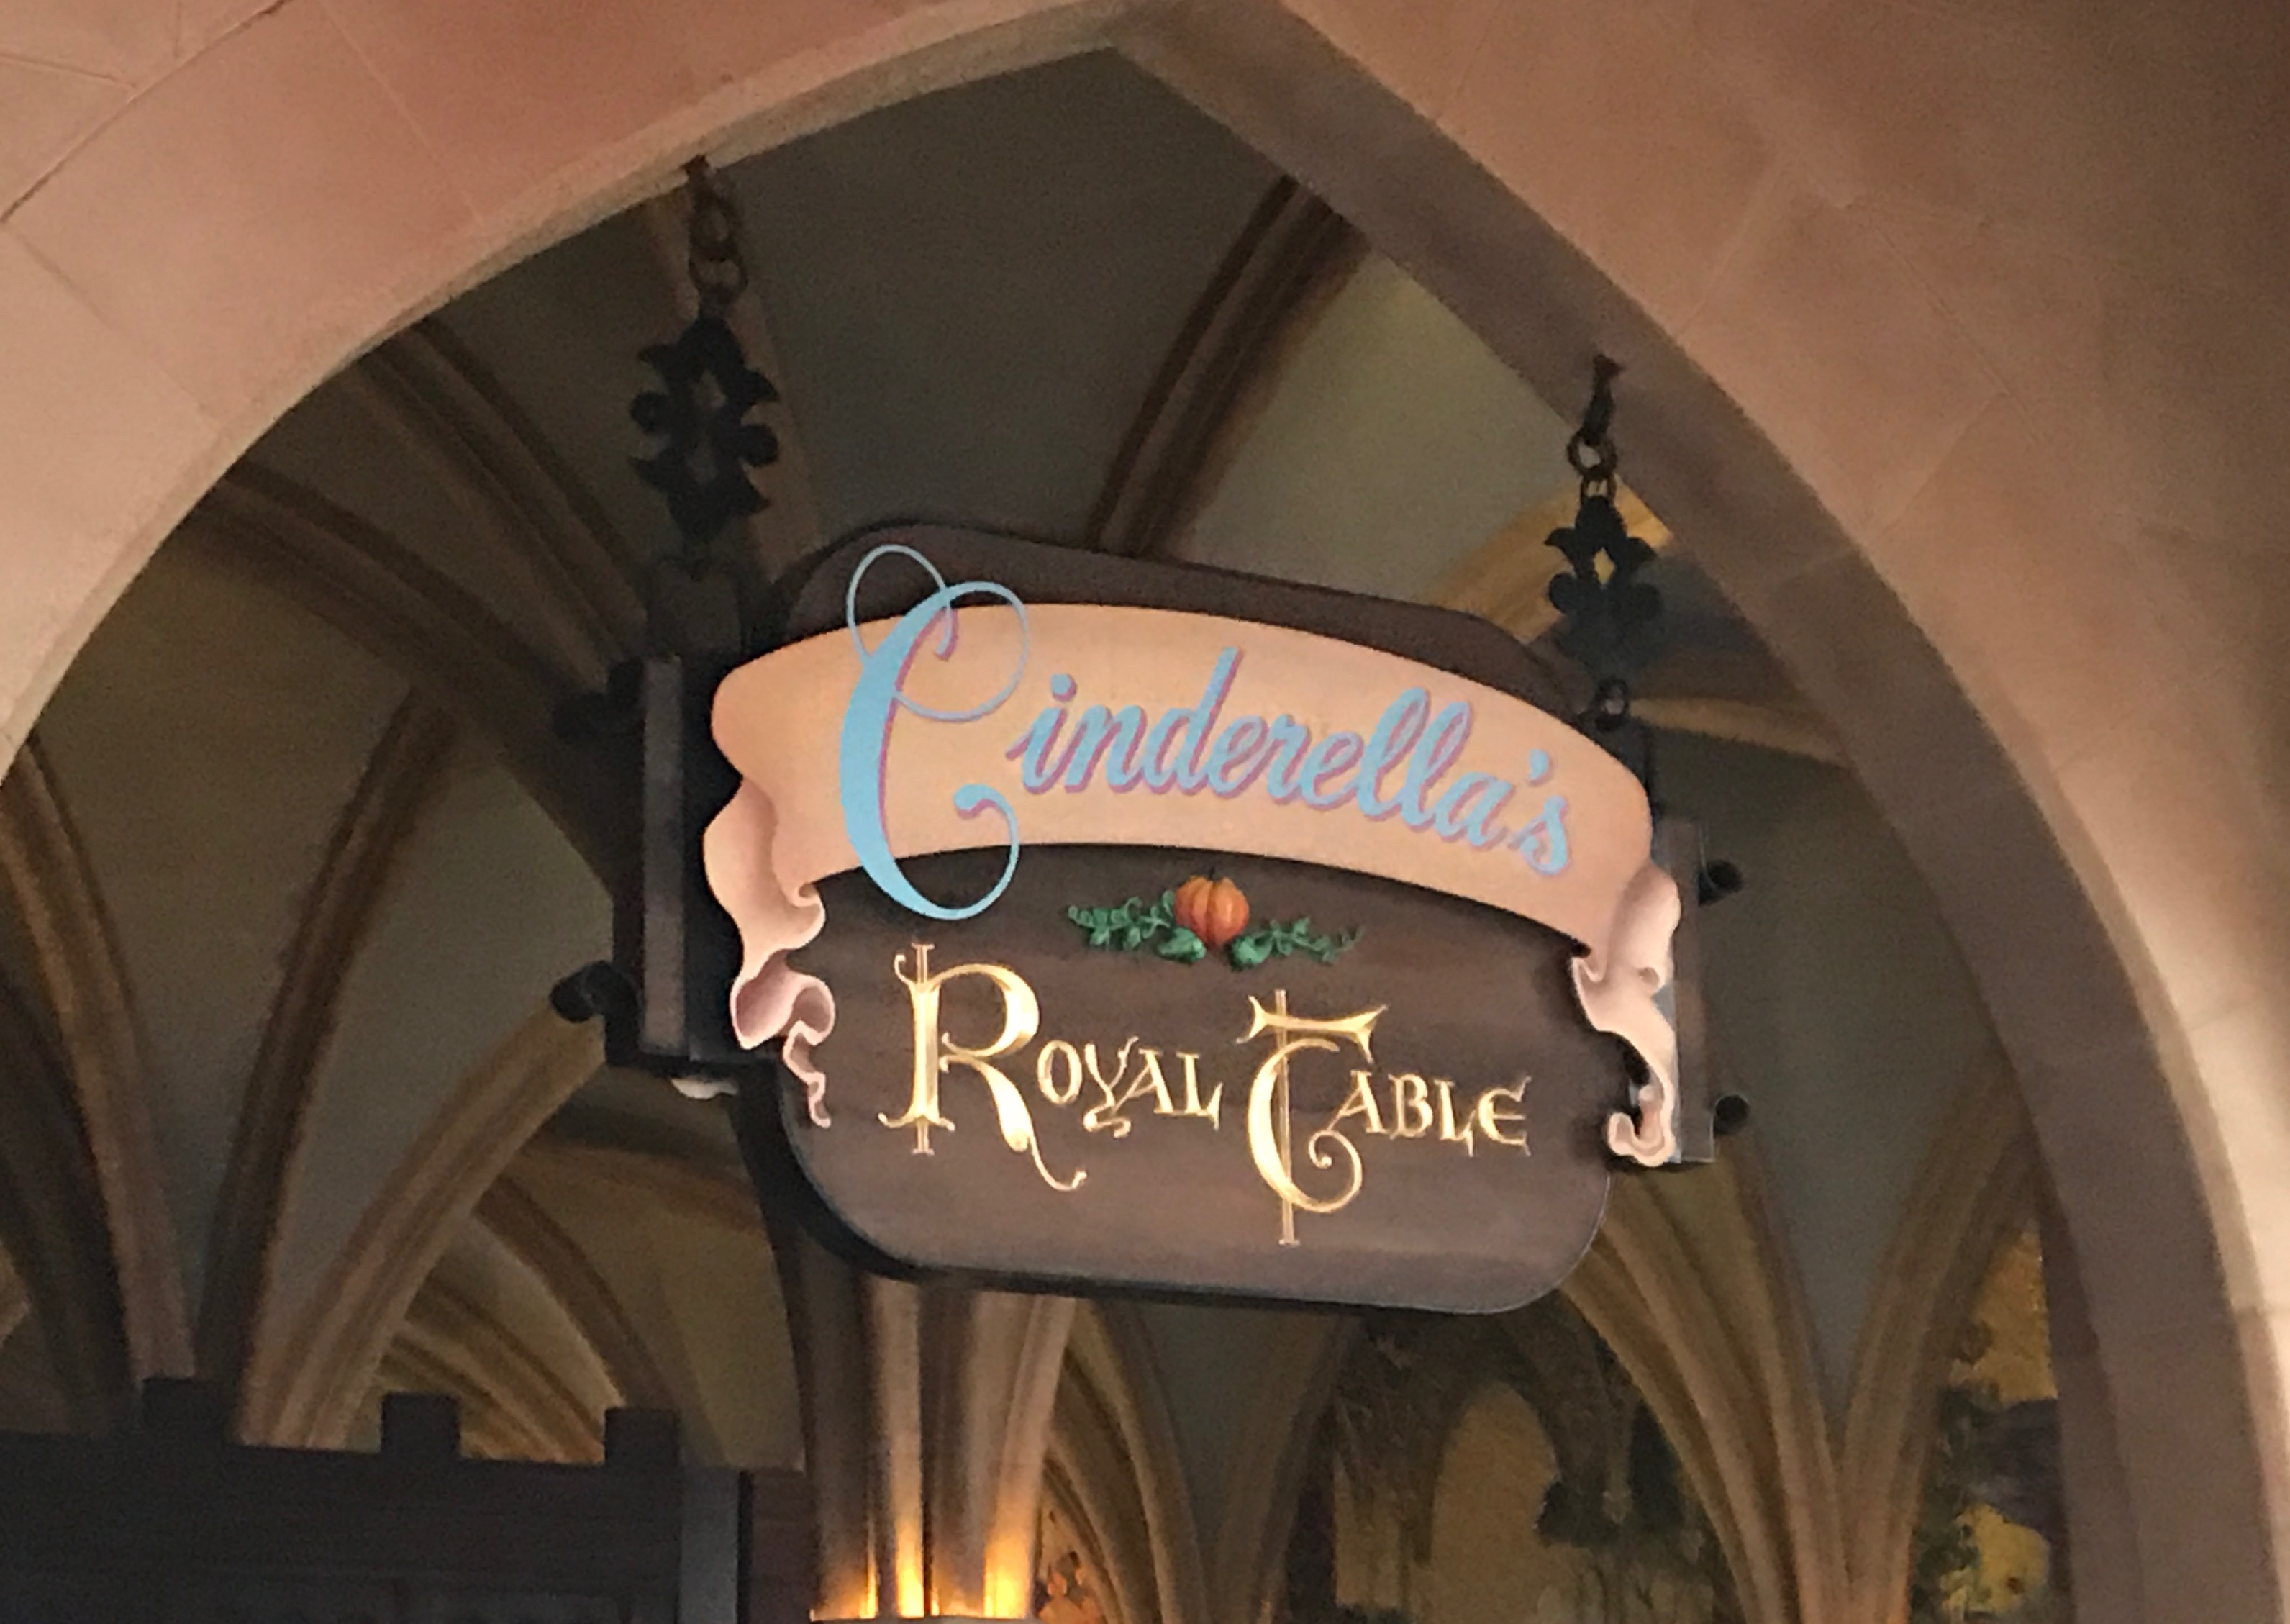 Cinderella's Royal Table in Disney World